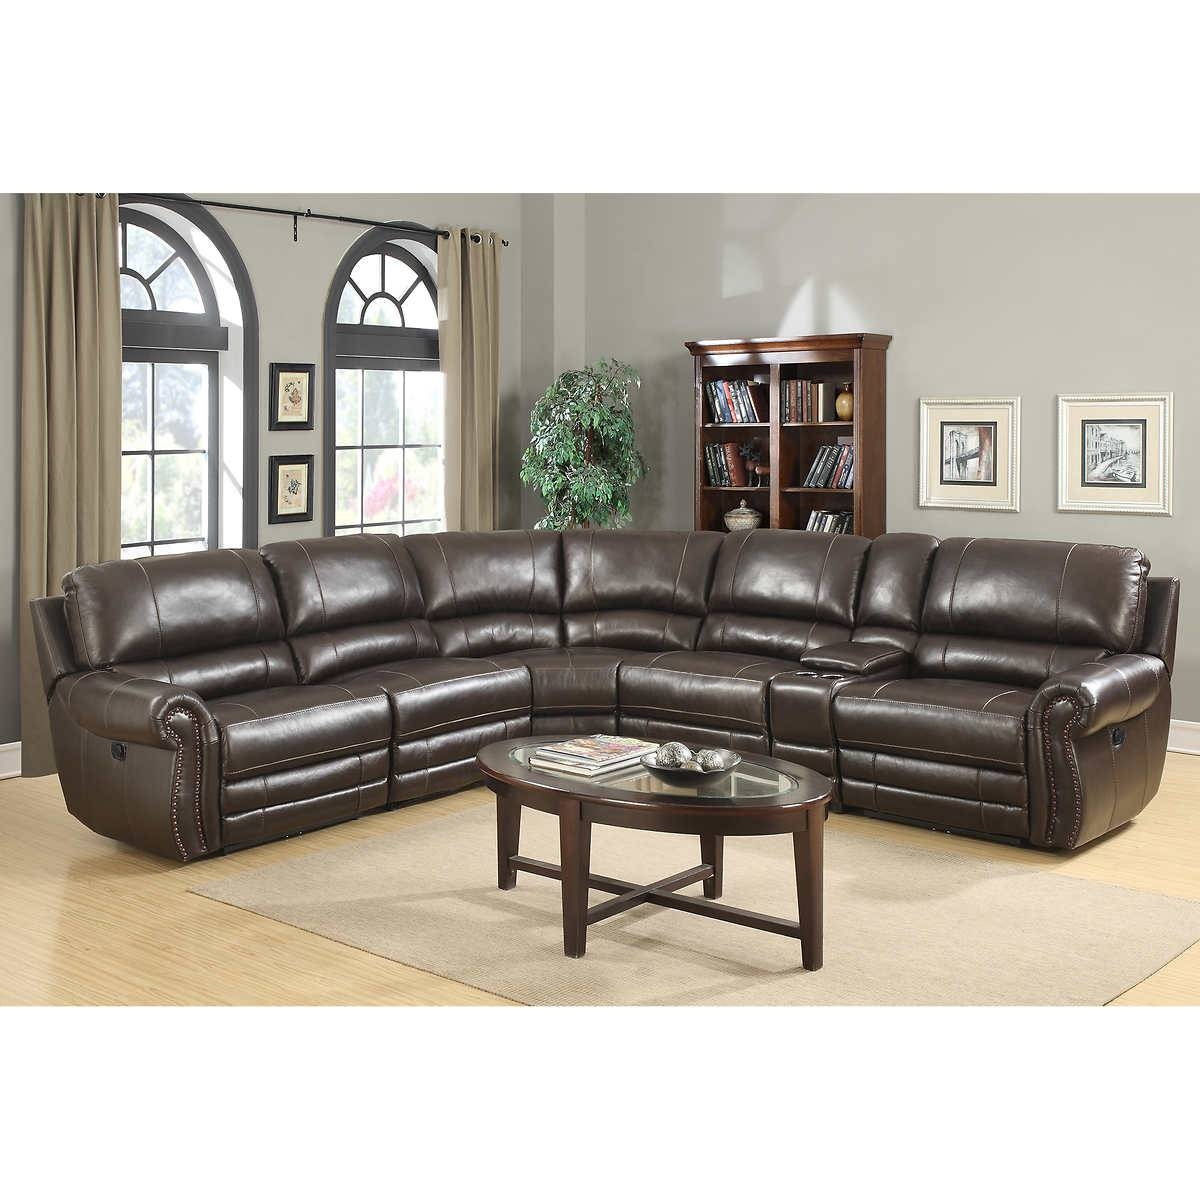 Leather Sectional Sofa | Demand Sofas Set with Leather Modular Sectional Sofas (Image 15 of 30)